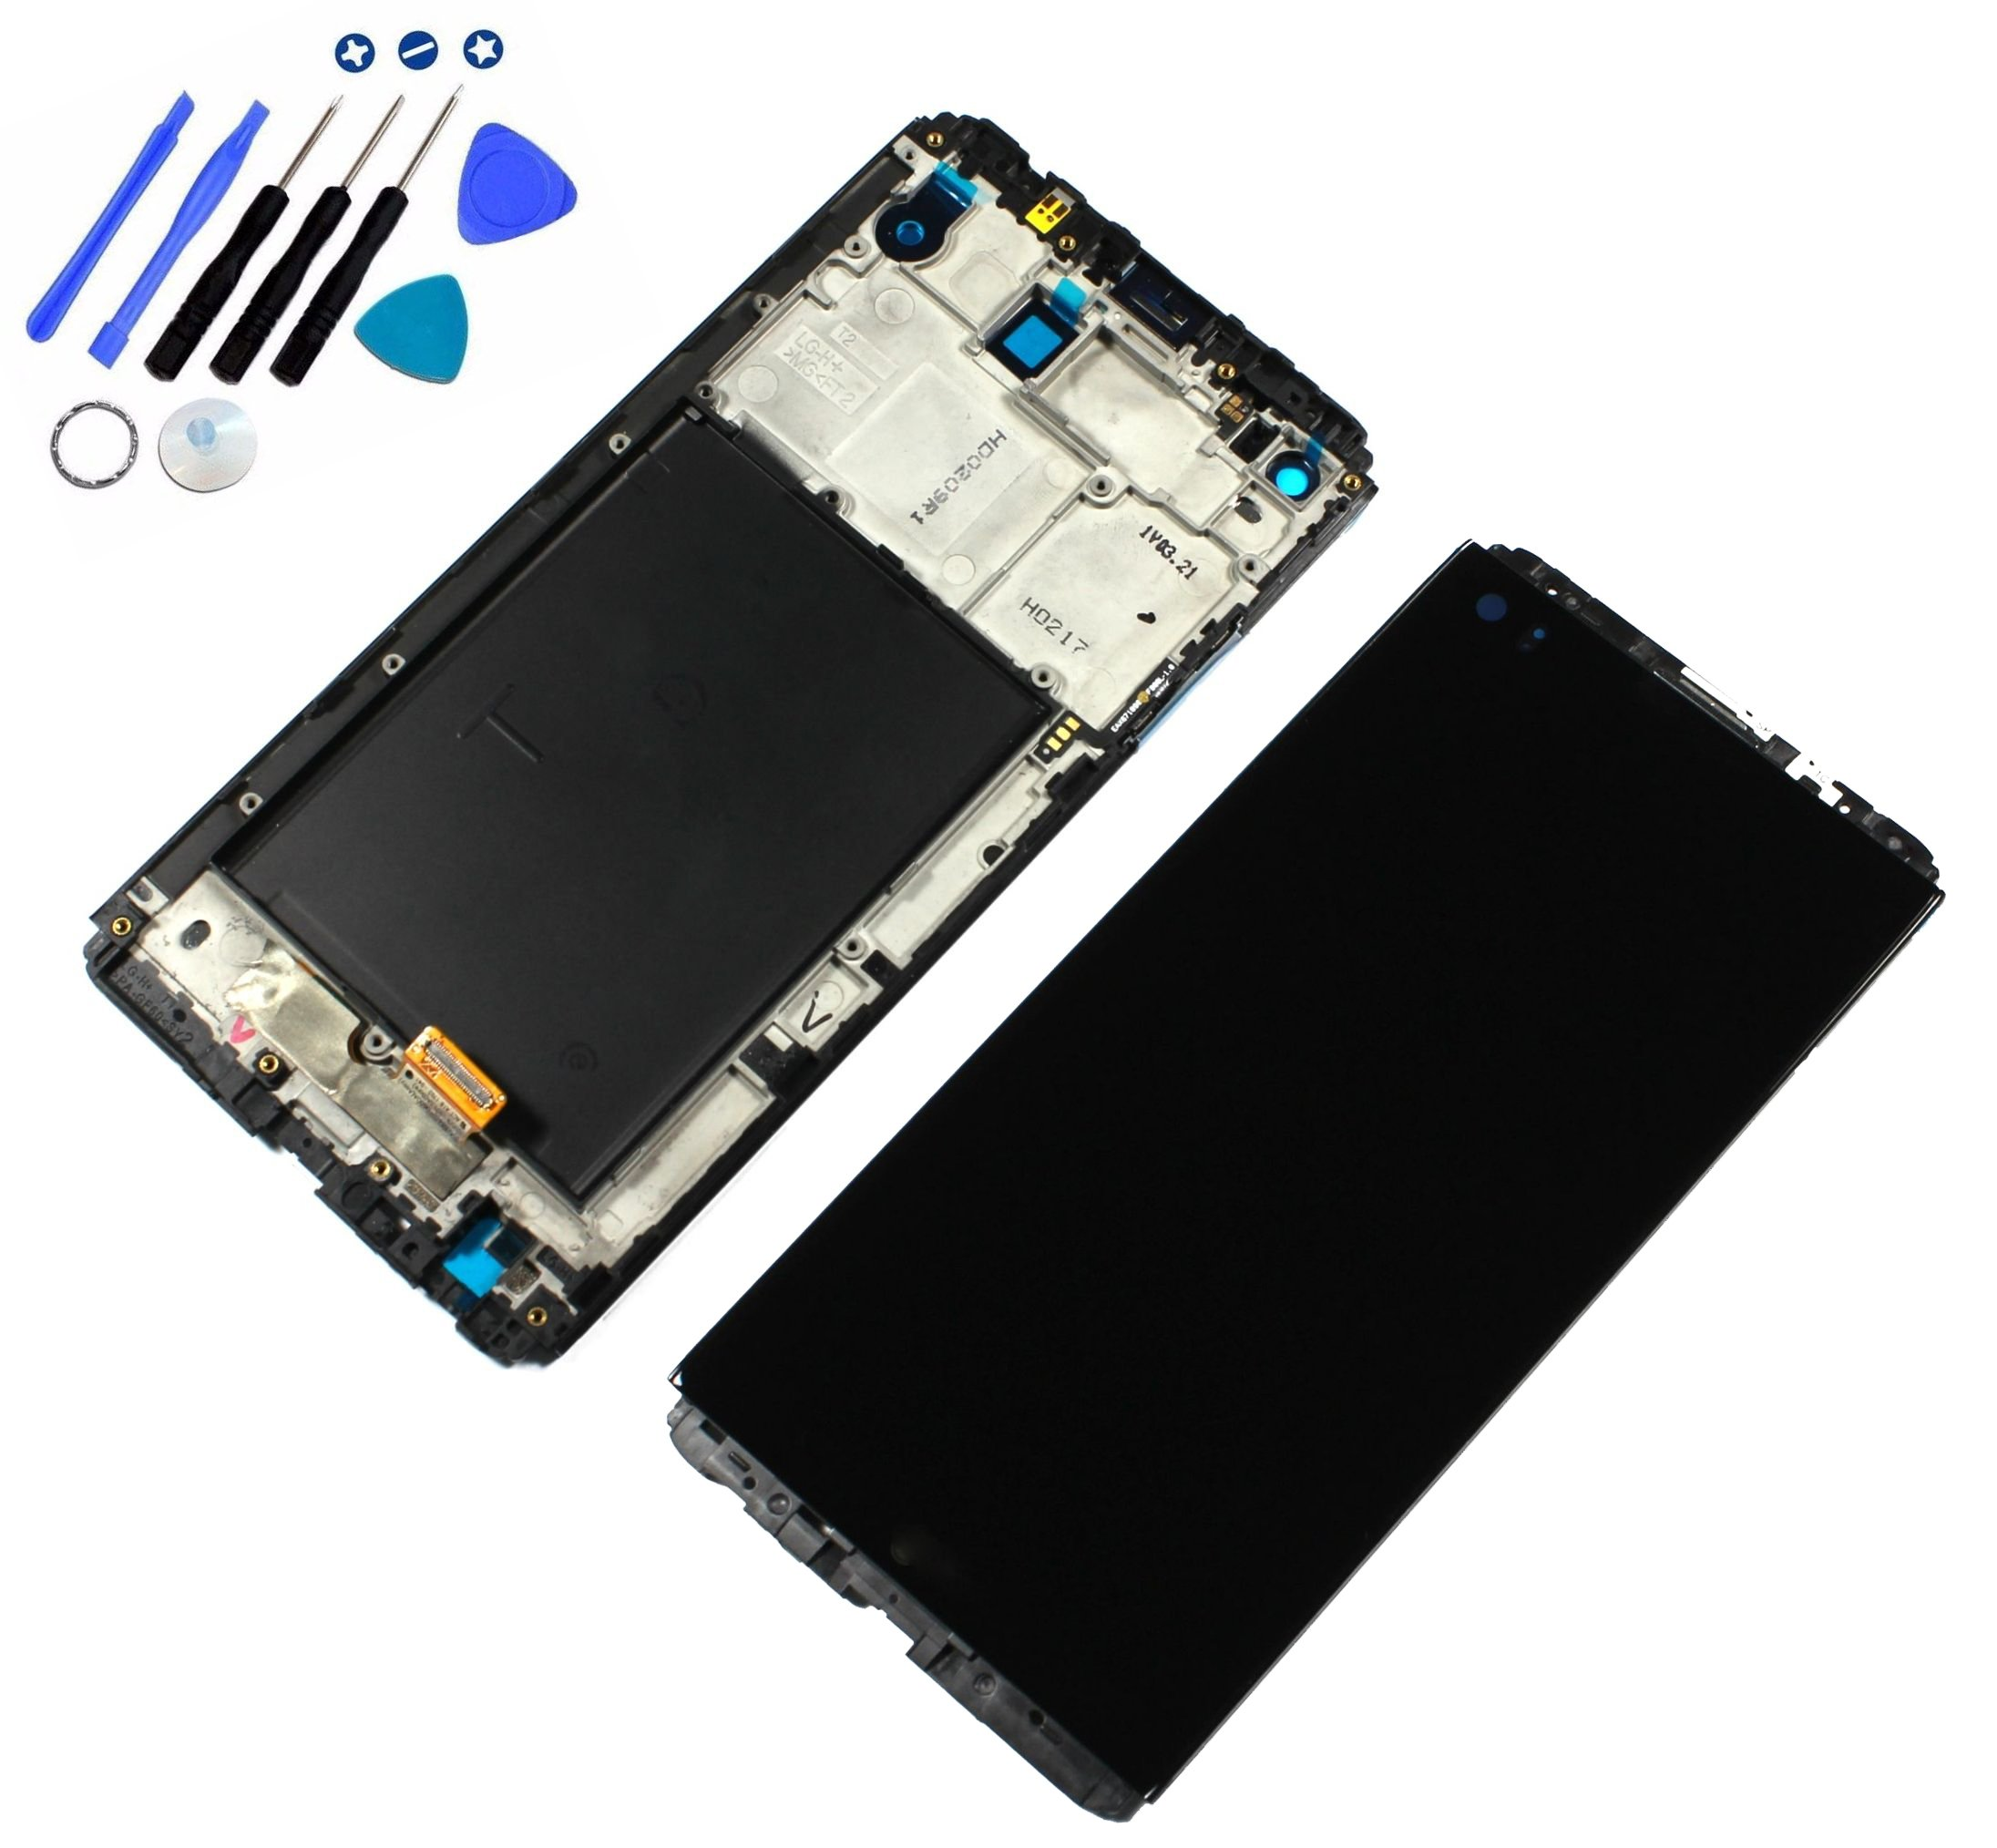 Eaglestar for LG V20 Replacement LCD Screen Assembly with Touch Screen Digitizer and LCD Pre-Installed with Housing Fit LG V20 LS997 US996 VS995 H918 H990 H910 H915 by Eaglewireless